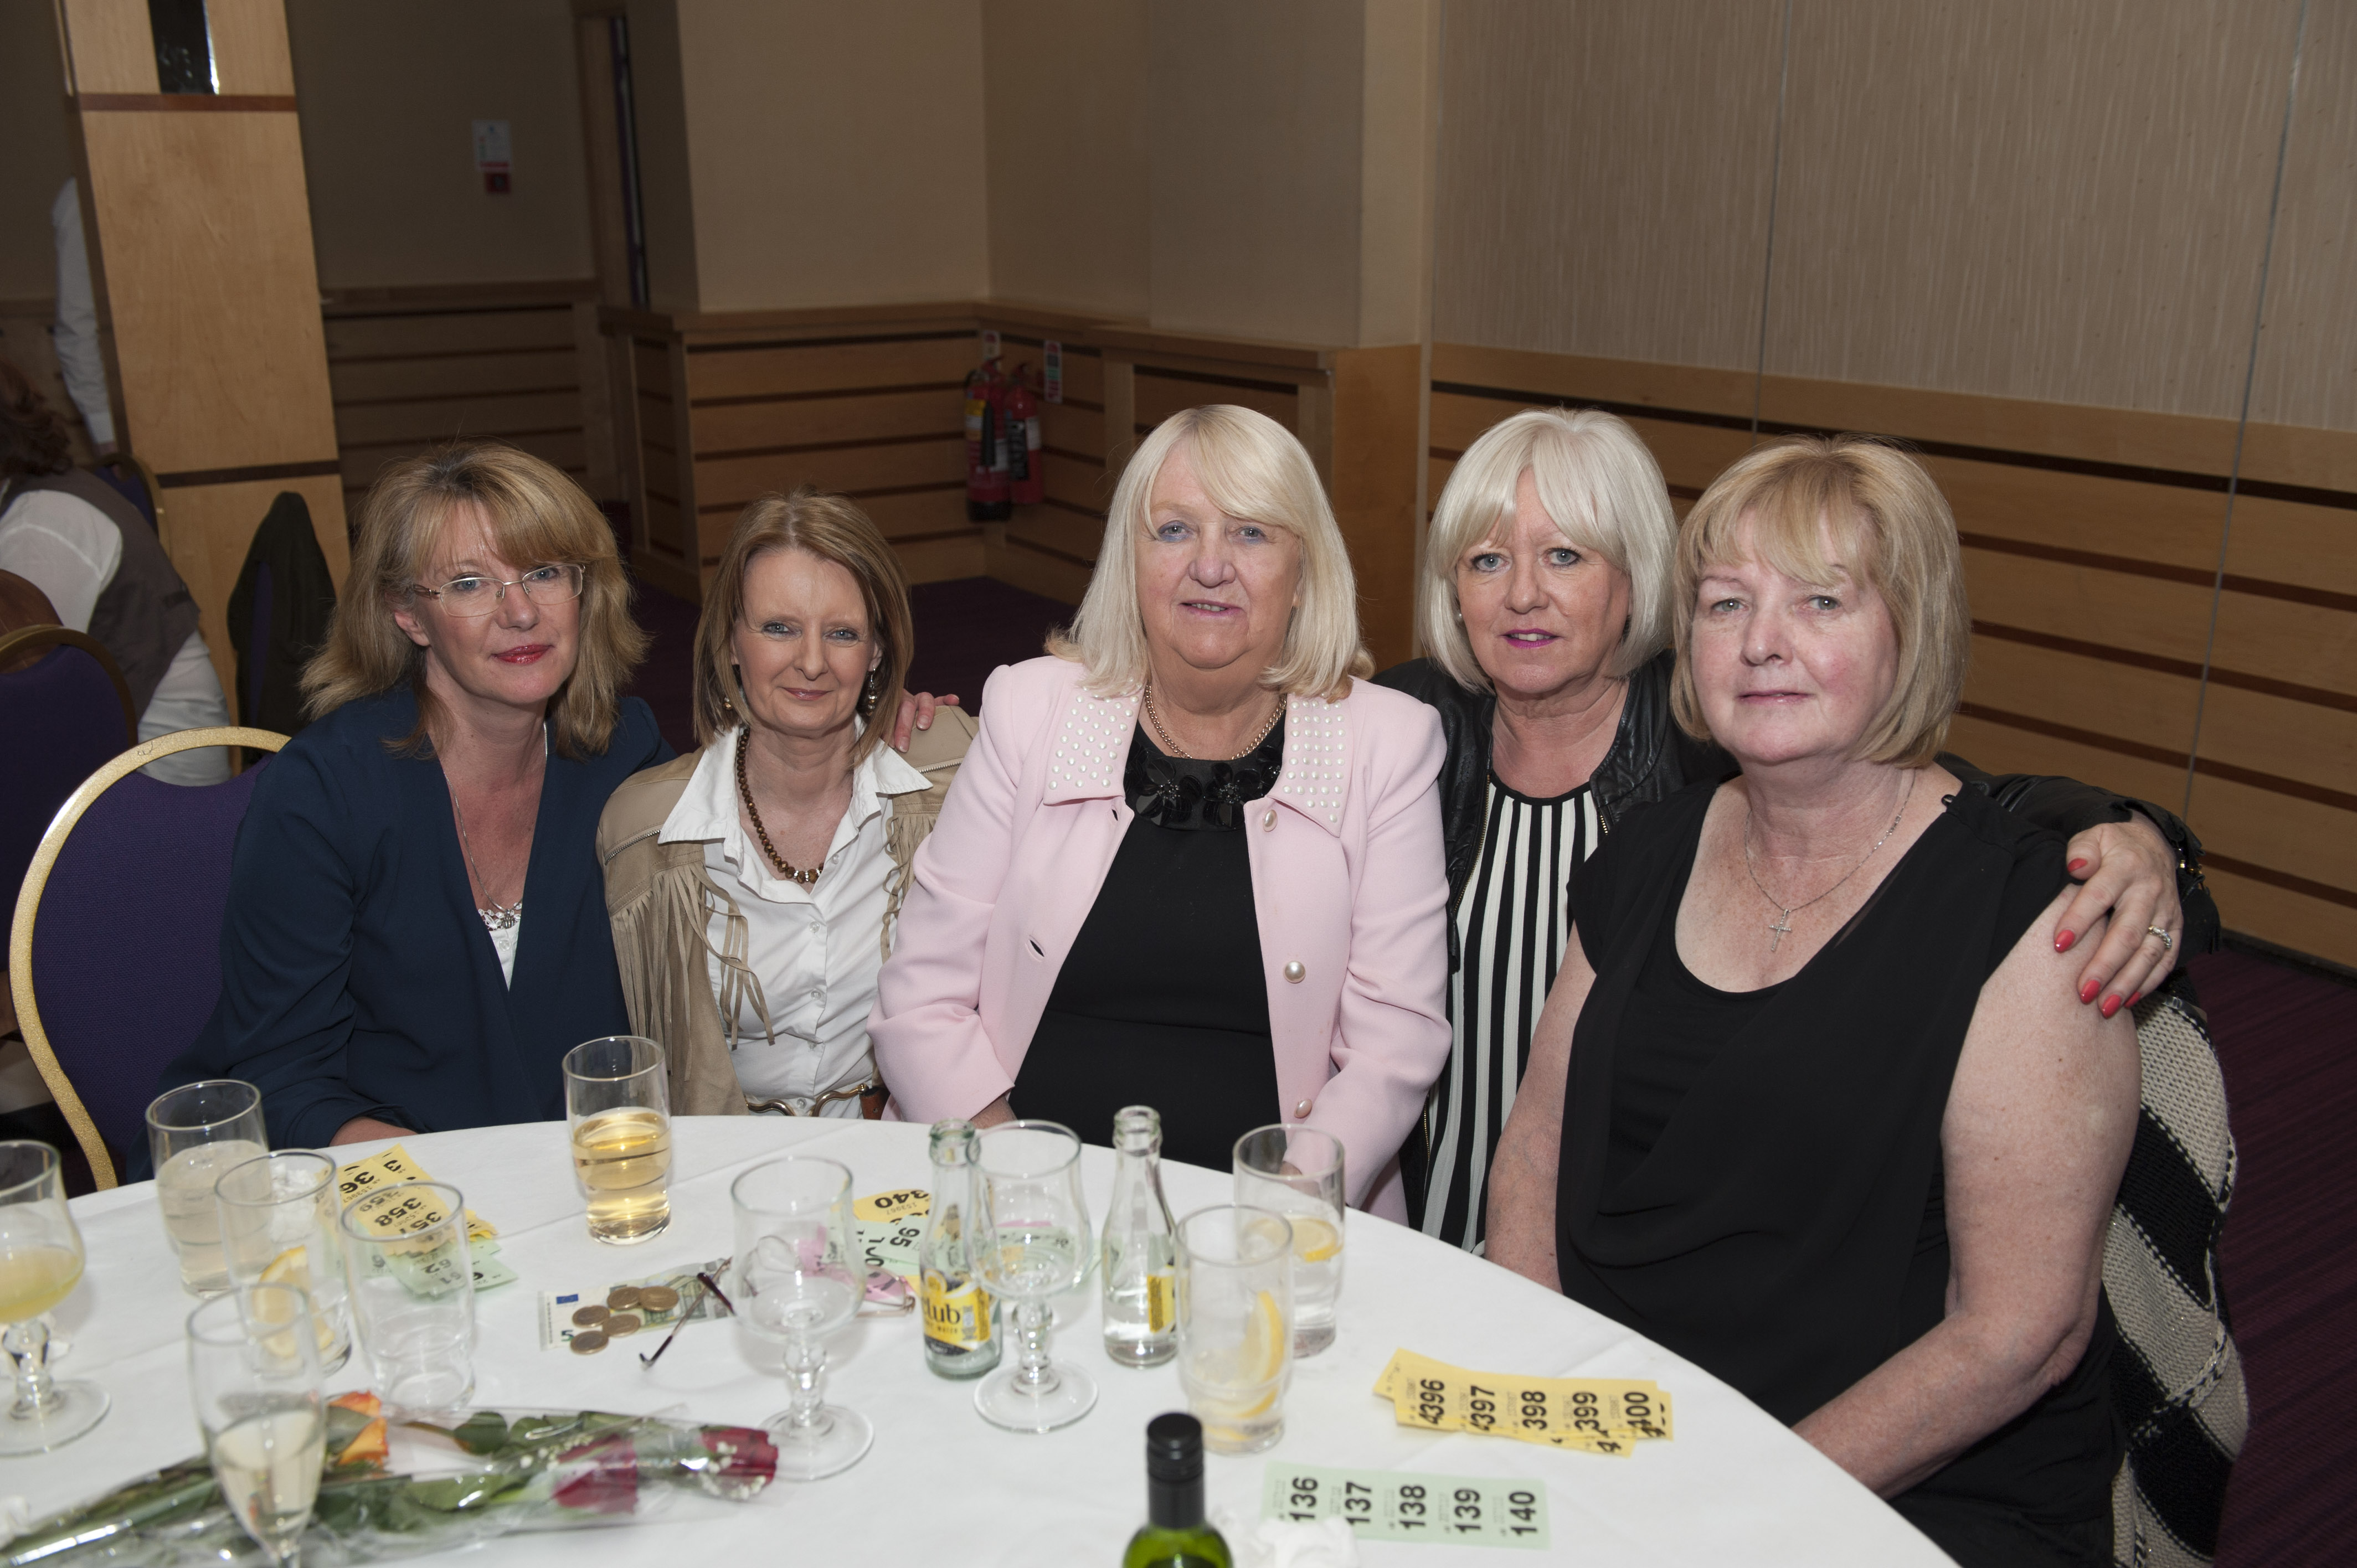 At the Monaghan Rotary Club Country & Western night were (L-R) Marcella Gaynor, Chris O'Connell, Jo Sherry, Kate McBride and Alice Mullen. ©Rory Geary/The Northern Standard